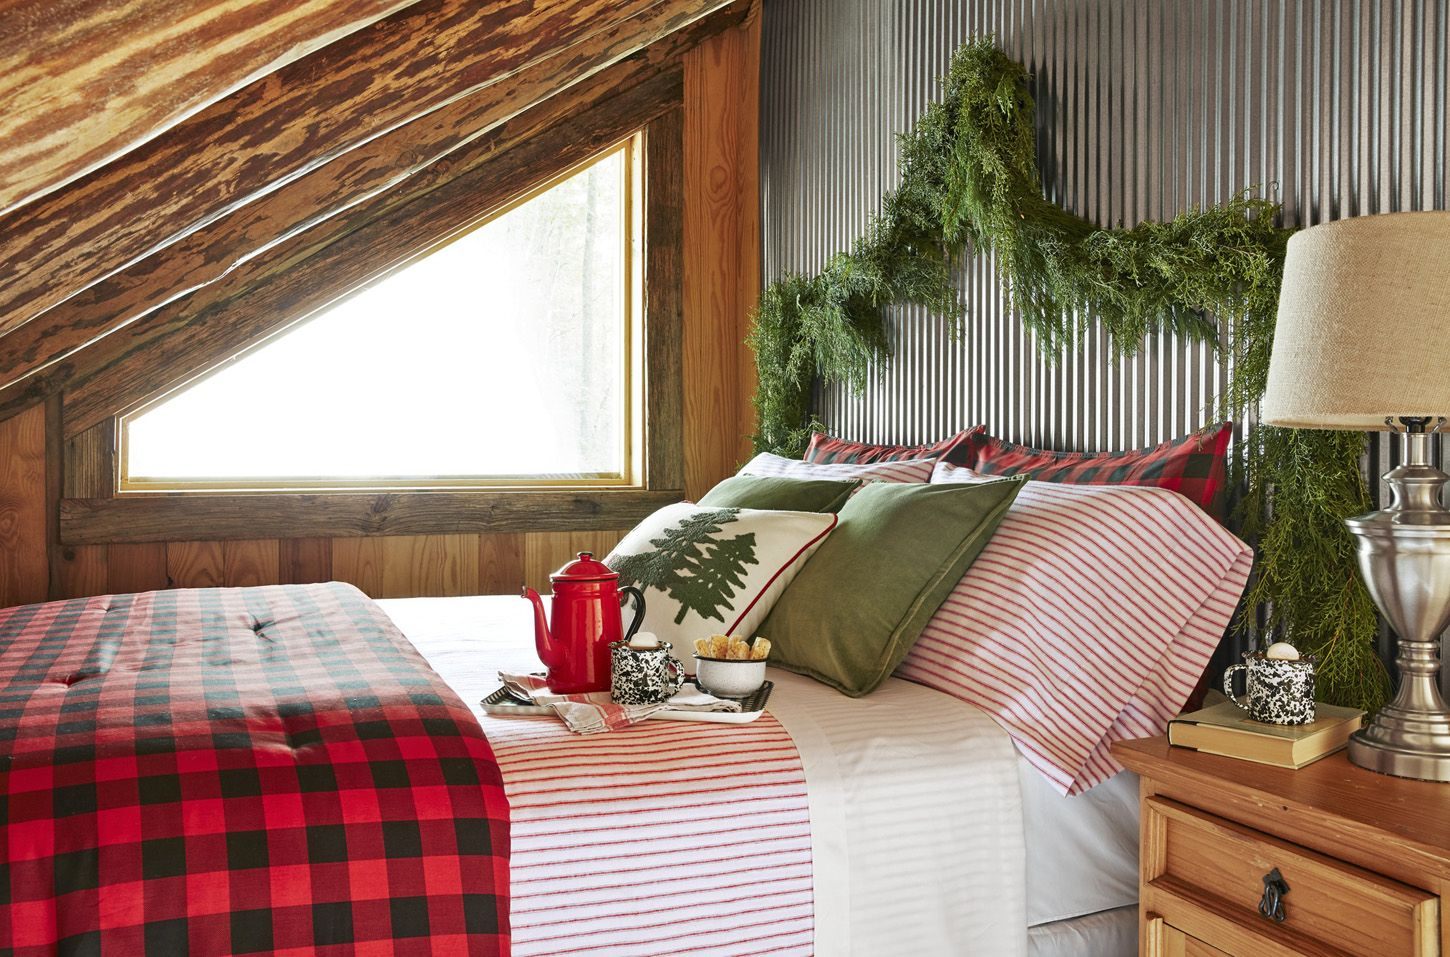 25 Fun Christmas Decor Ideas - Headboard